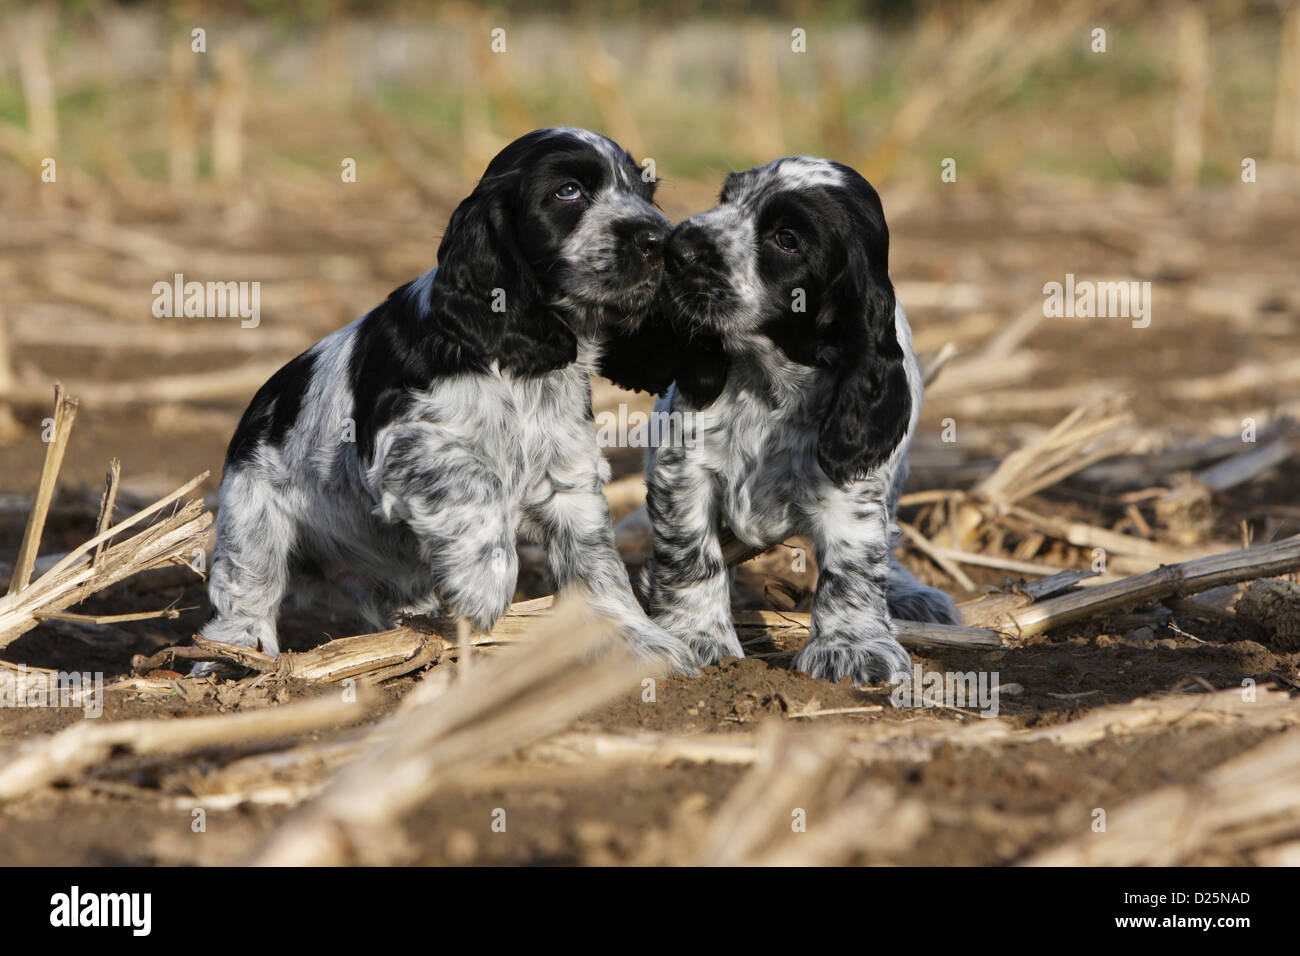 Dog English Cocker Spaniel two puppies (blue roan) in a field cuddly